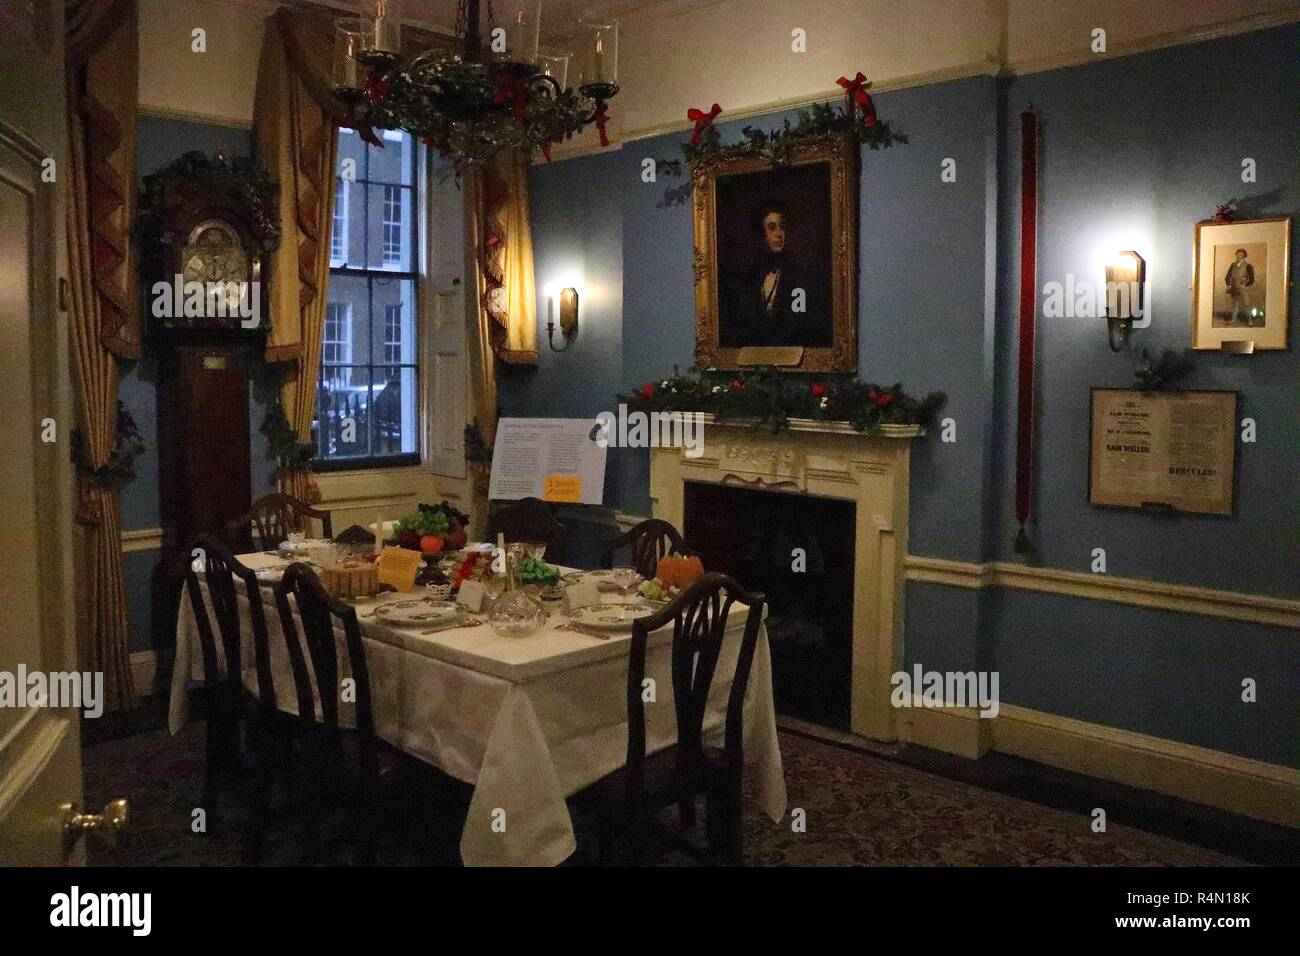 Food Glorious Food : Dinner with Dickens - Stock Image